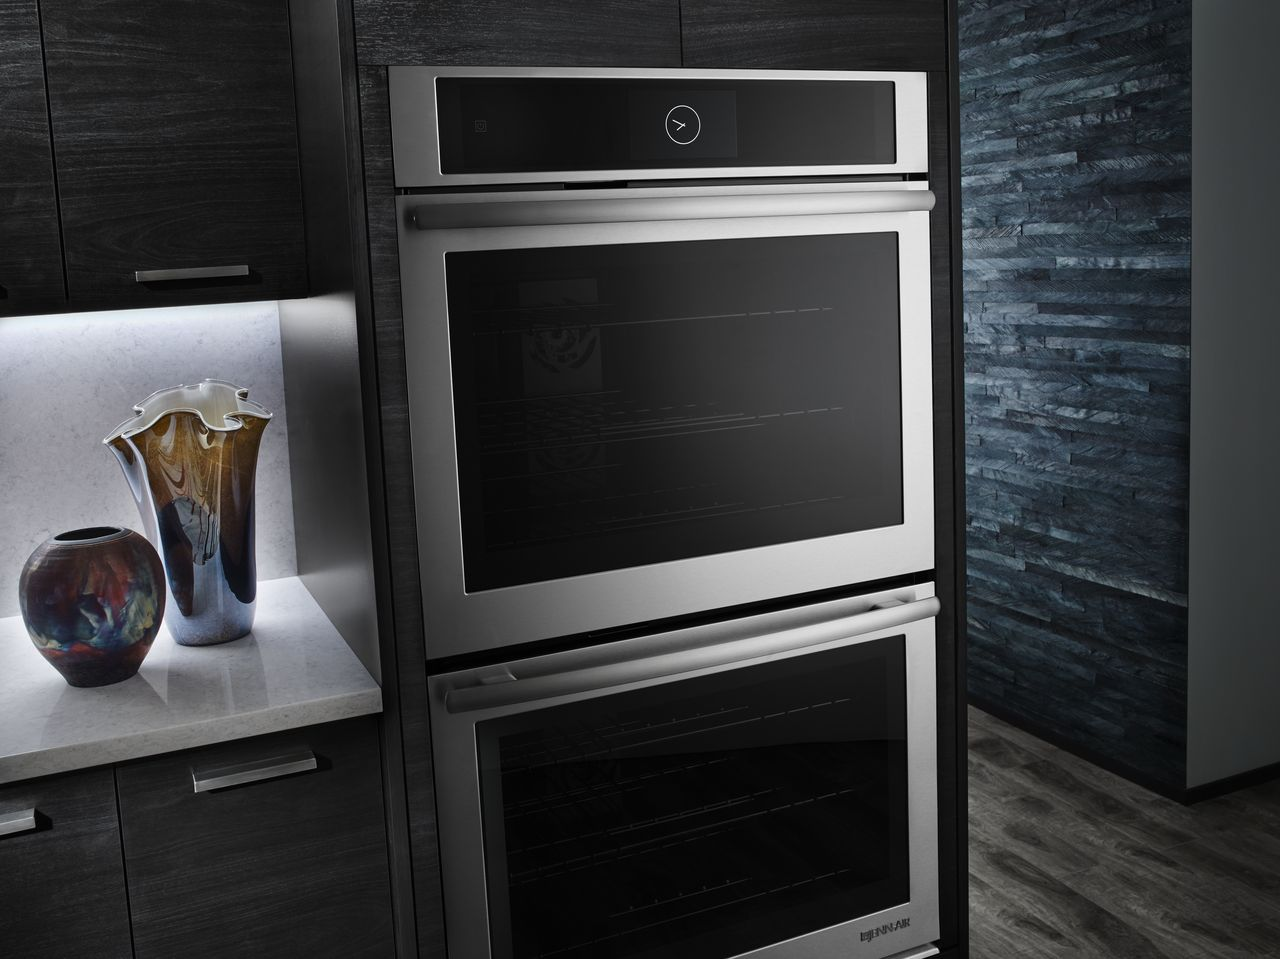 Whirlpool: collaboration with Google - HA Household Appliances ...